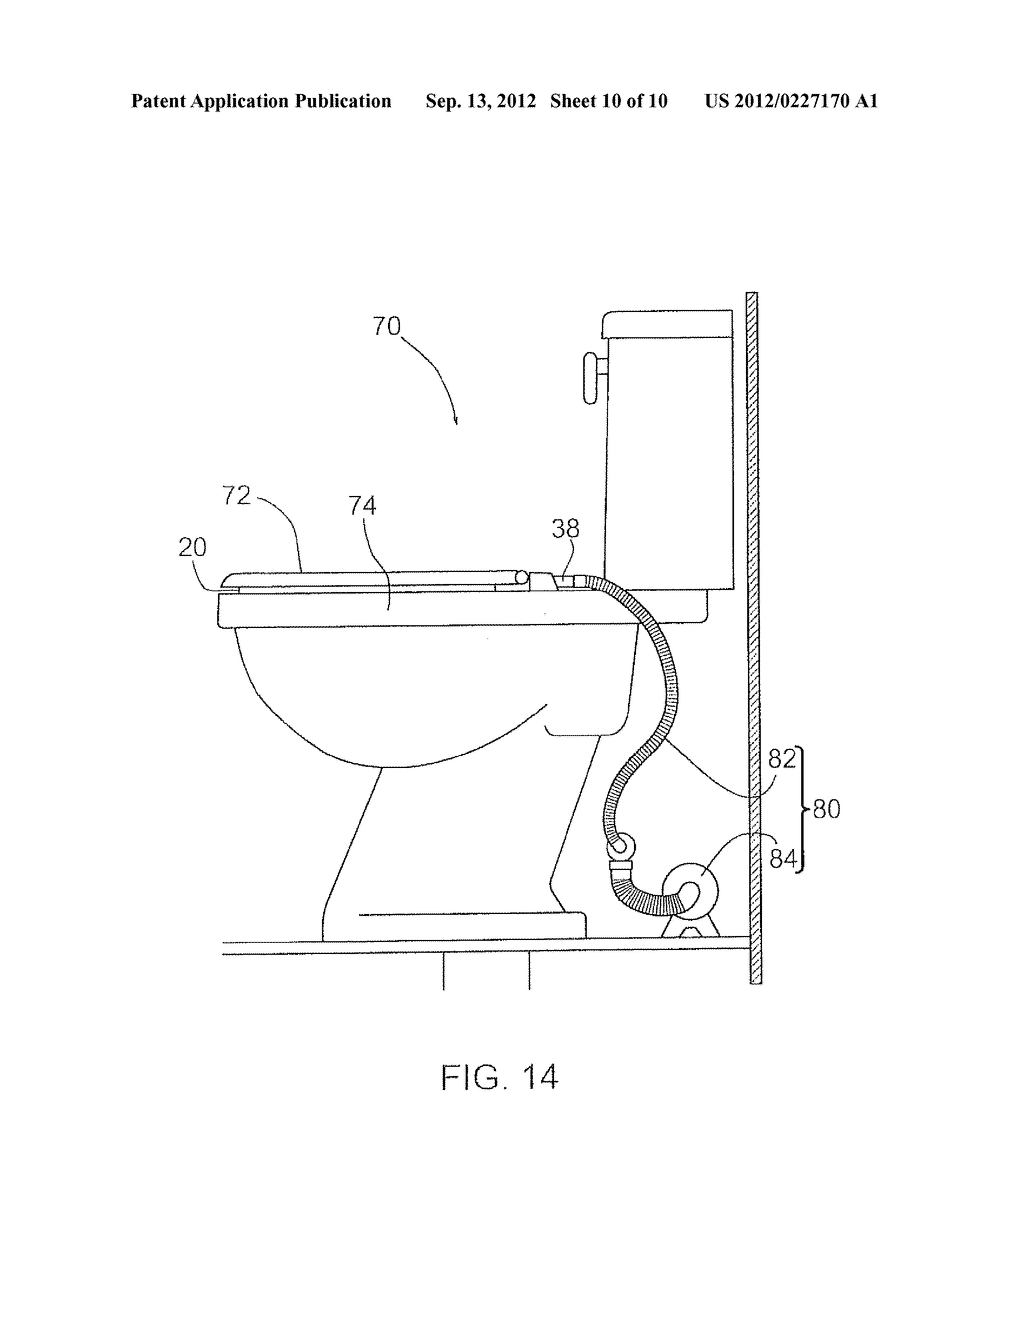 small resolution of venting attachment for use with a toilet diagram schematic and